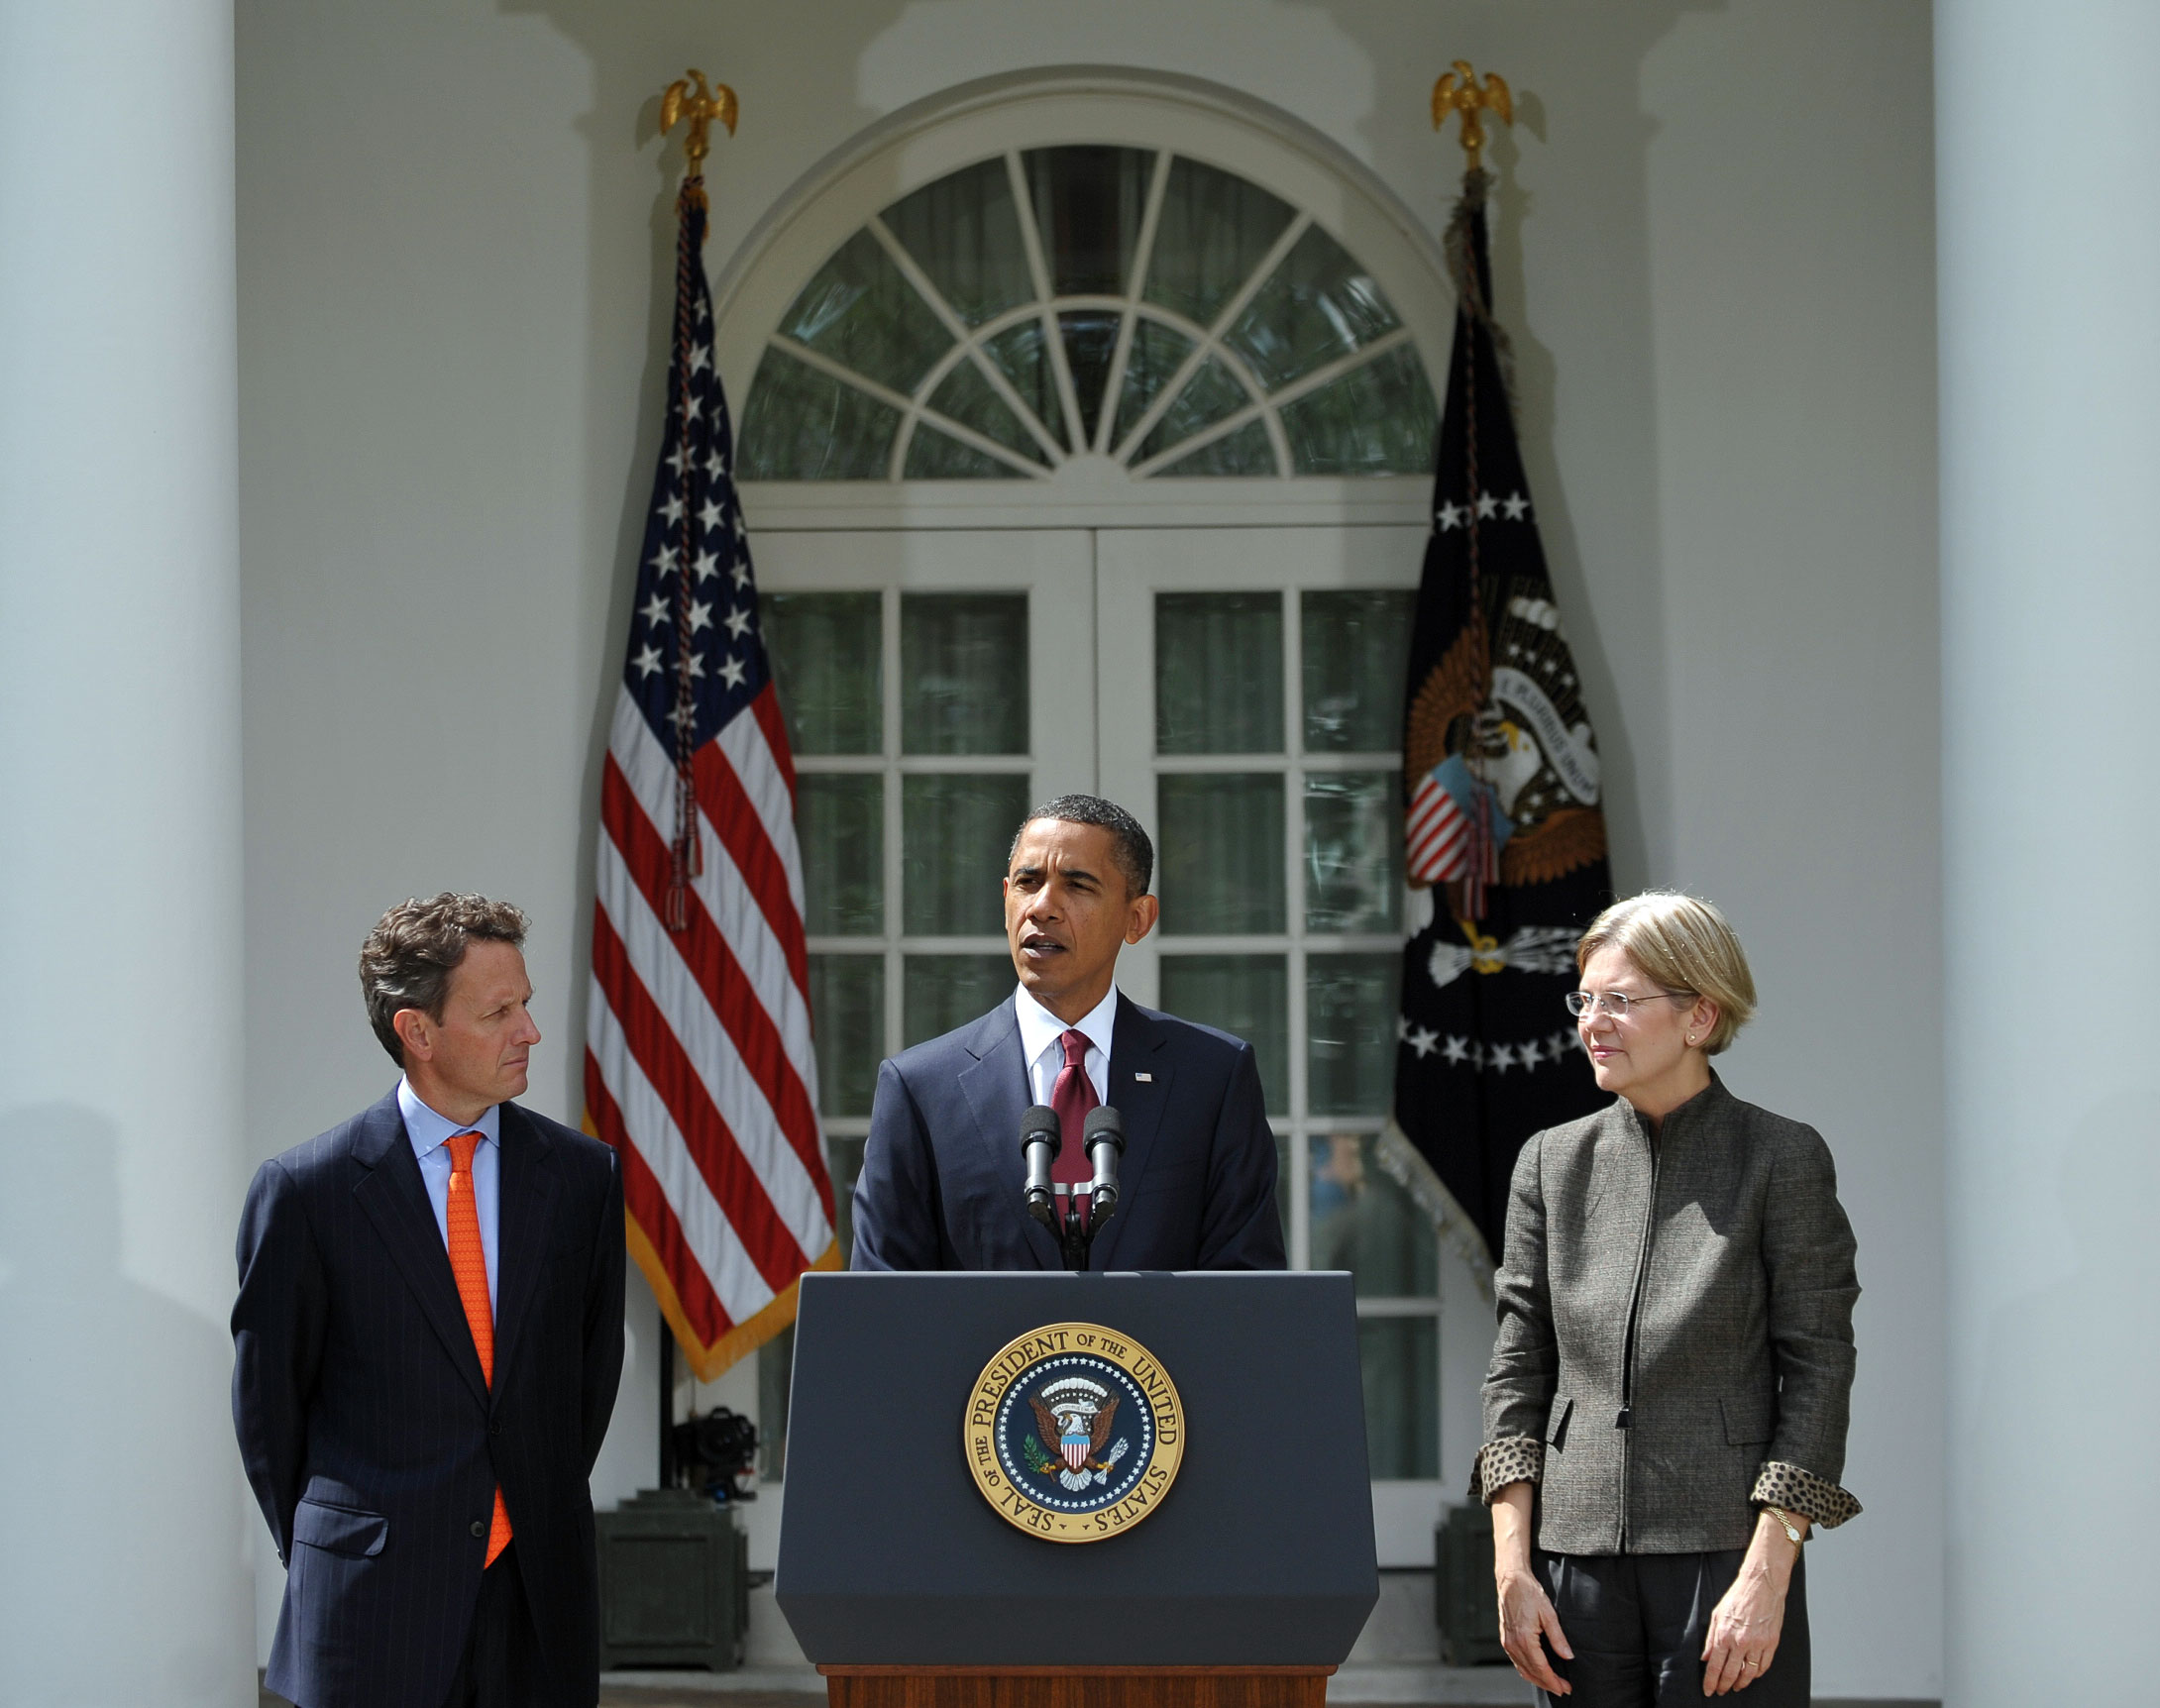 US President Barack Obama announces the appointment of Elizabeth Warren (R) as assistant to the president and special advisor to Treasury Secretary Timothy Geithner (L) September 17, 2010 in the Rose Garden of the White House in Washington, DC. Warren will help create the new Consumer Financial Protection Bureau. AFP PHOTO/Mandel NGAN (Photo credit should read MANDEL NGAN/AFP via Getty Images)